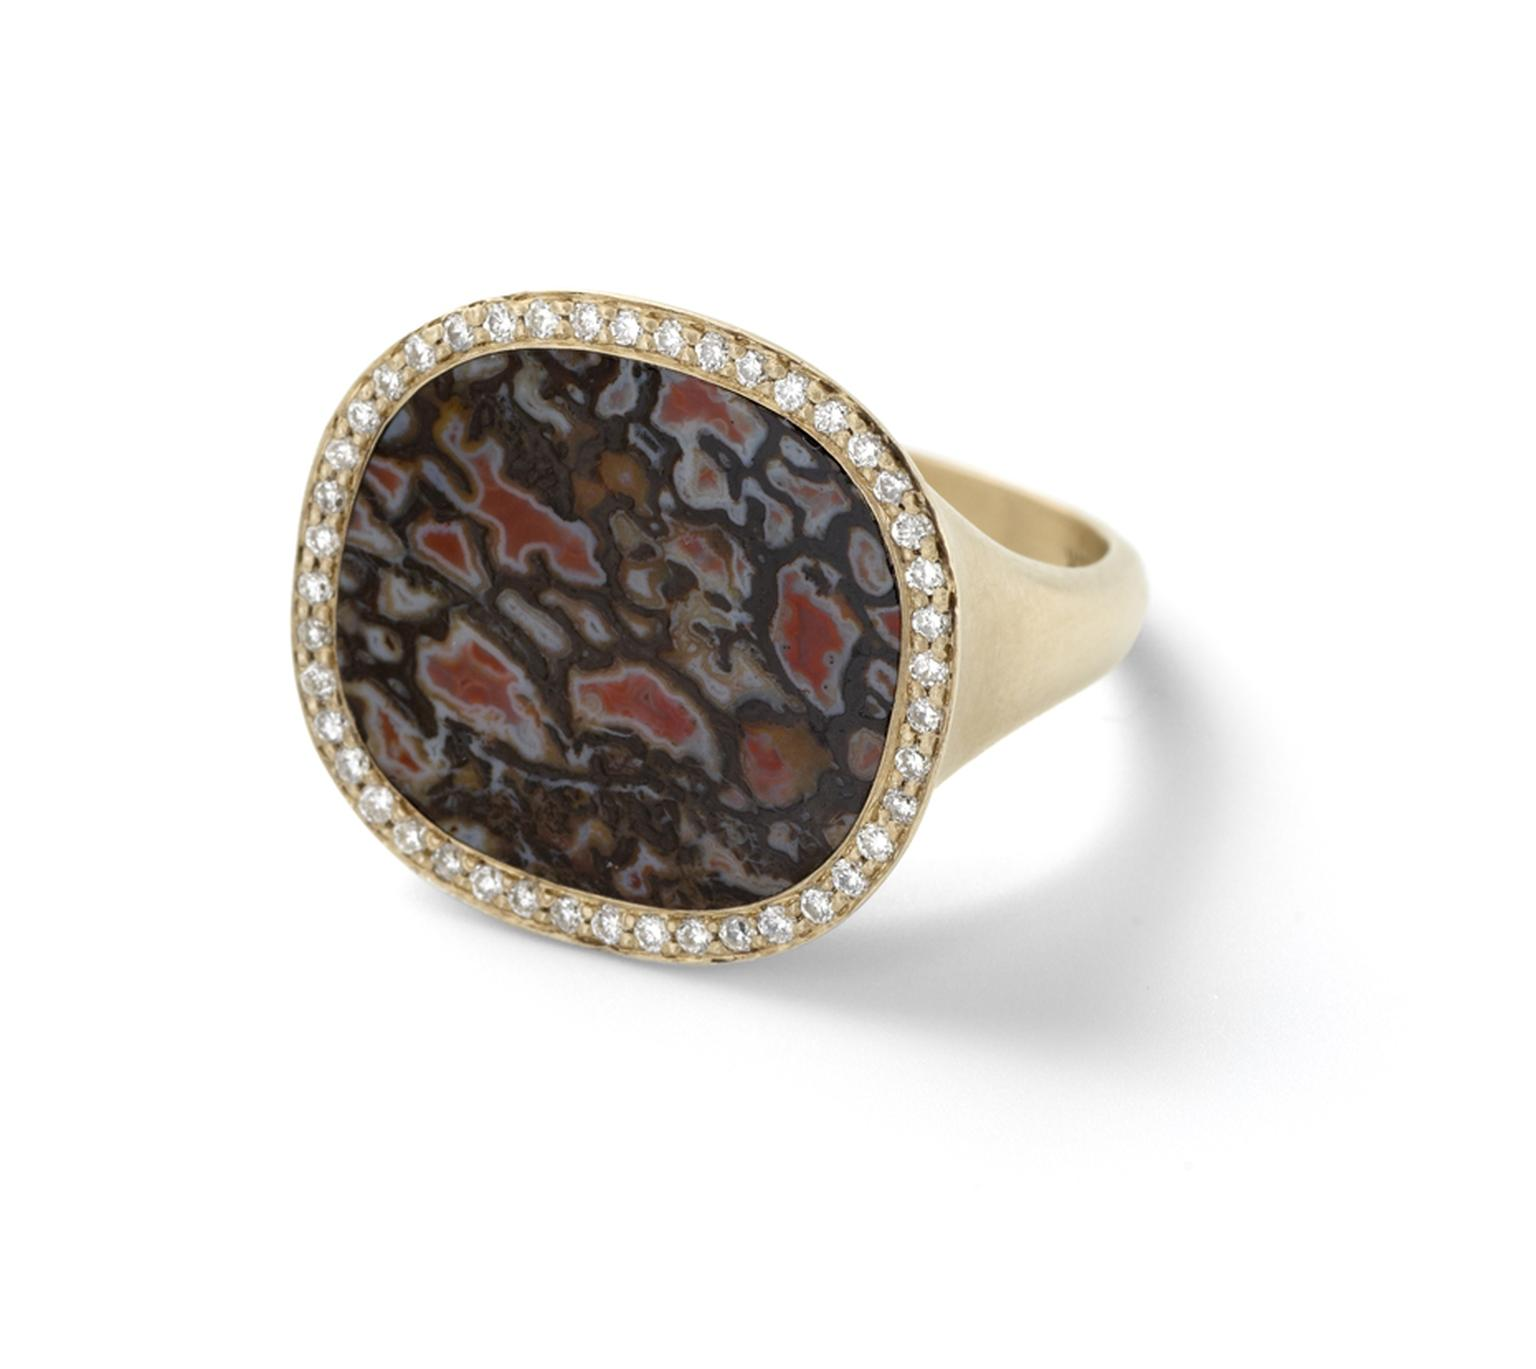 Monique Péan fossilized dinosaur bone ring in recycled yellow gold with diamond pavé.